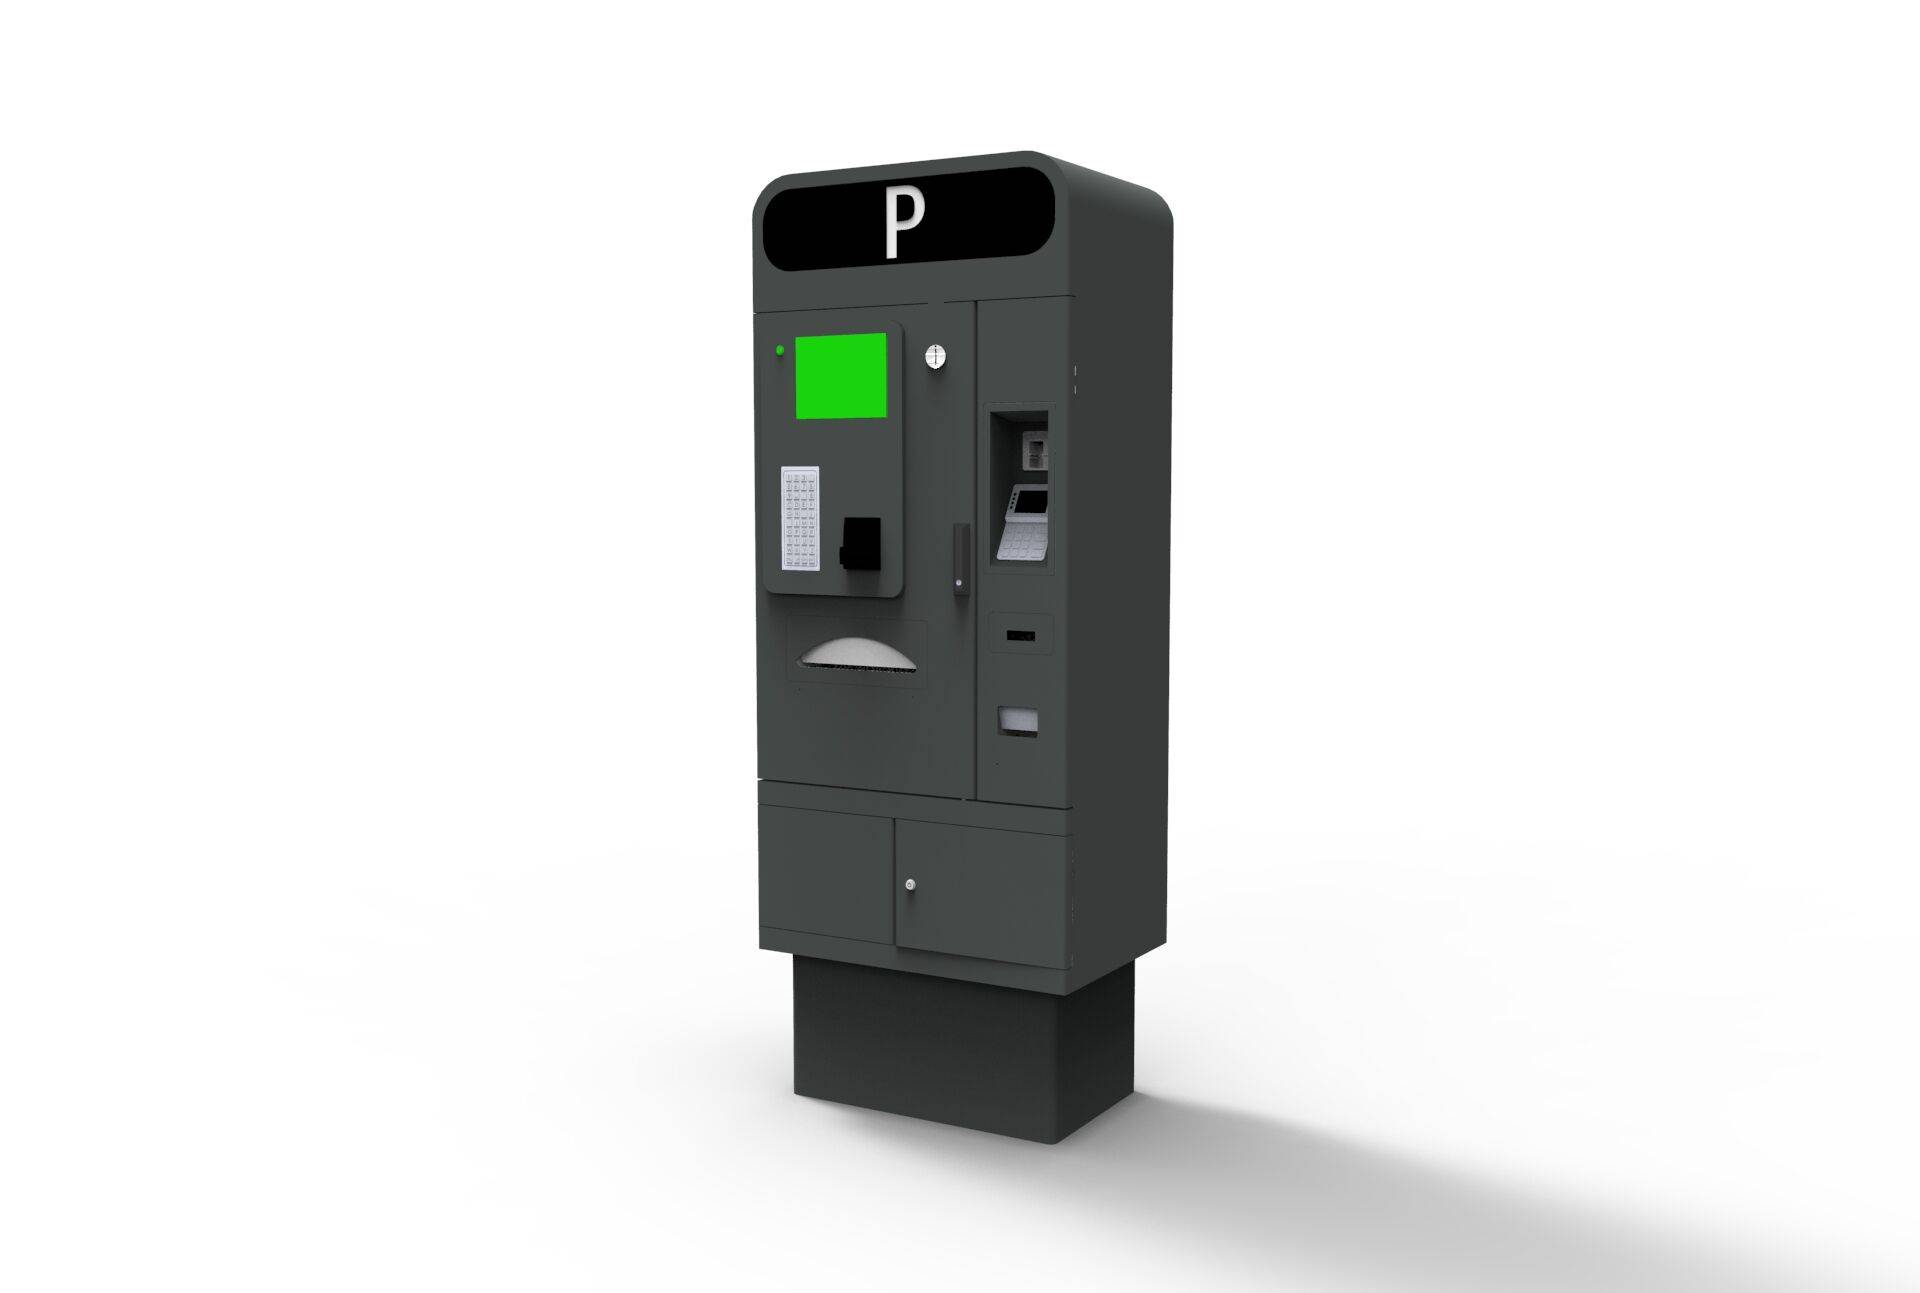 bill coin parking ticket payment kioskwith full function